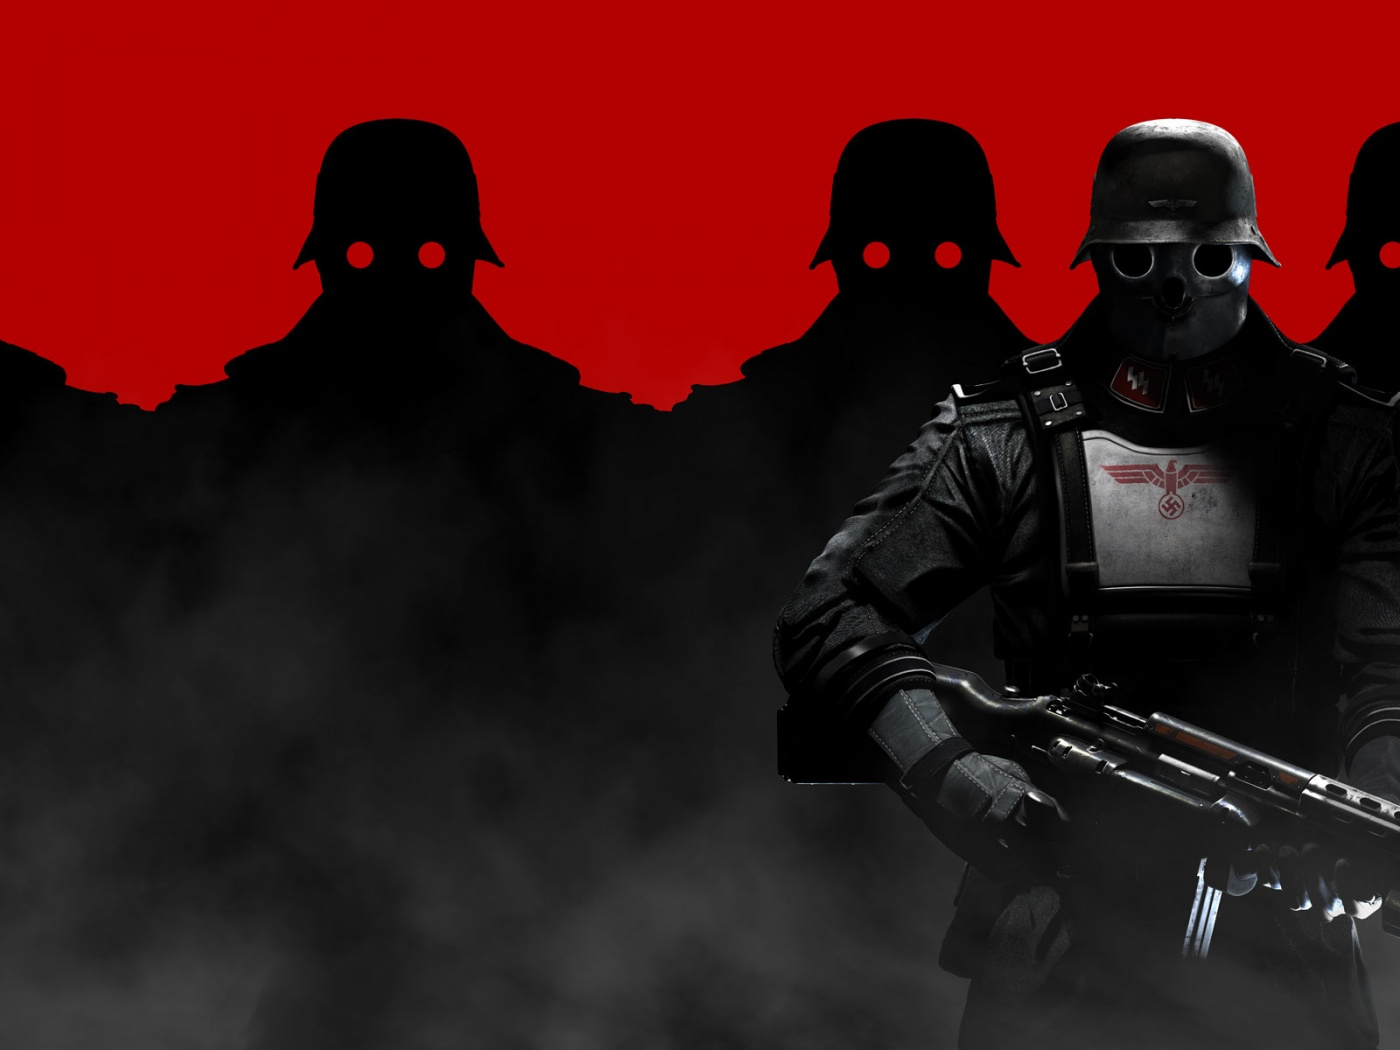 wolfenstein the new order game 2013 wallpapers 1400x1050